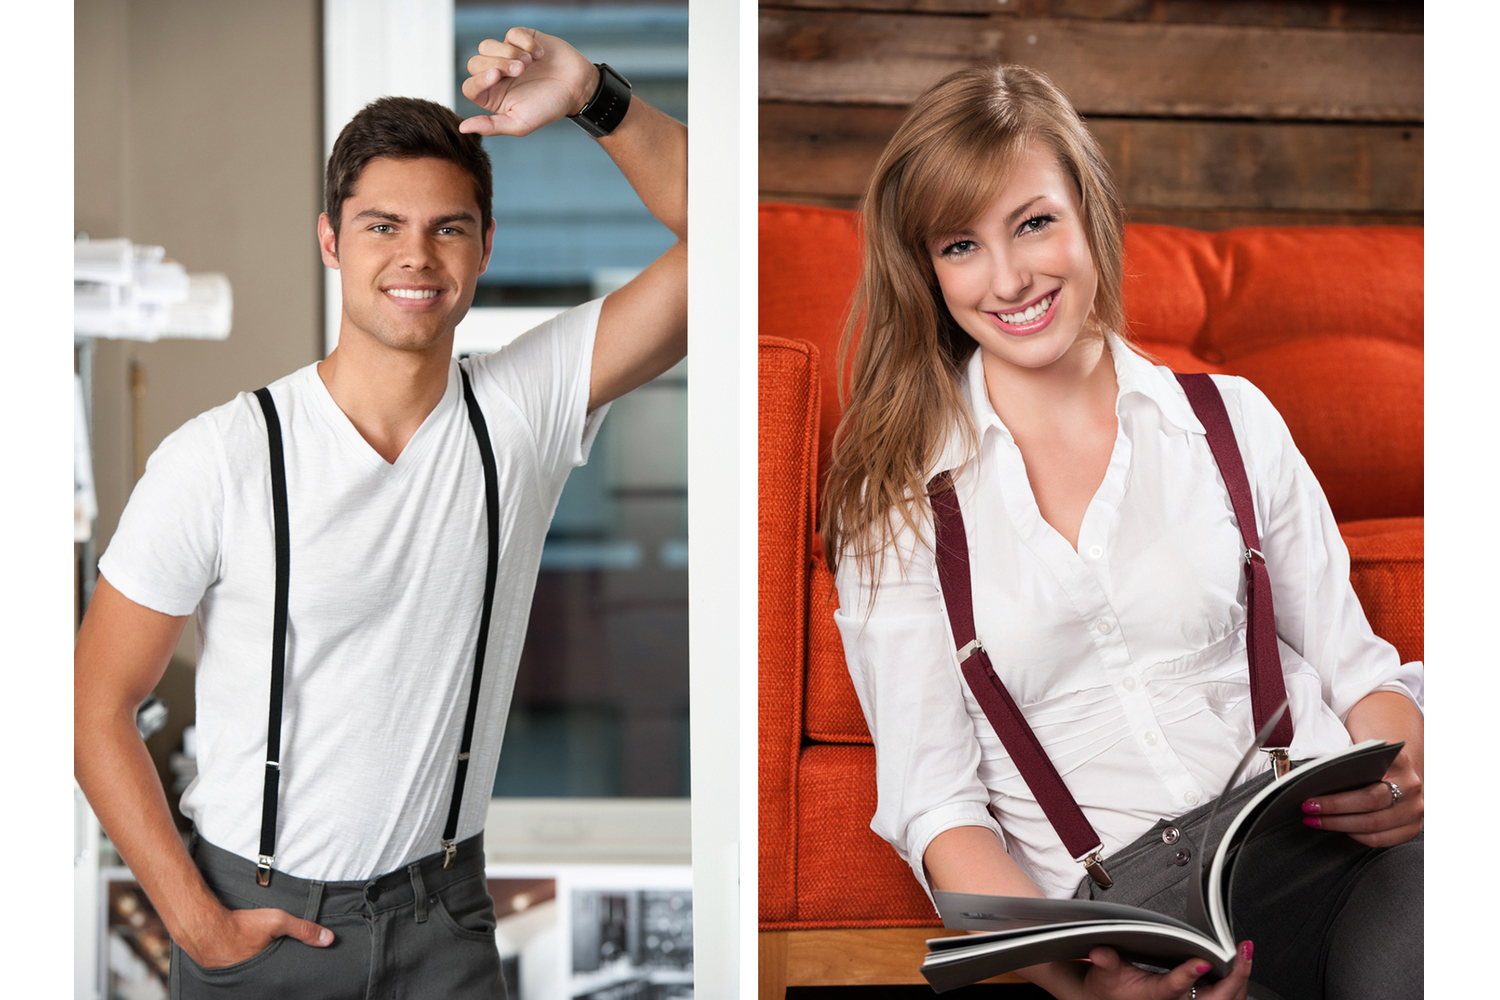 URBAN CHIC SUSPENDERS